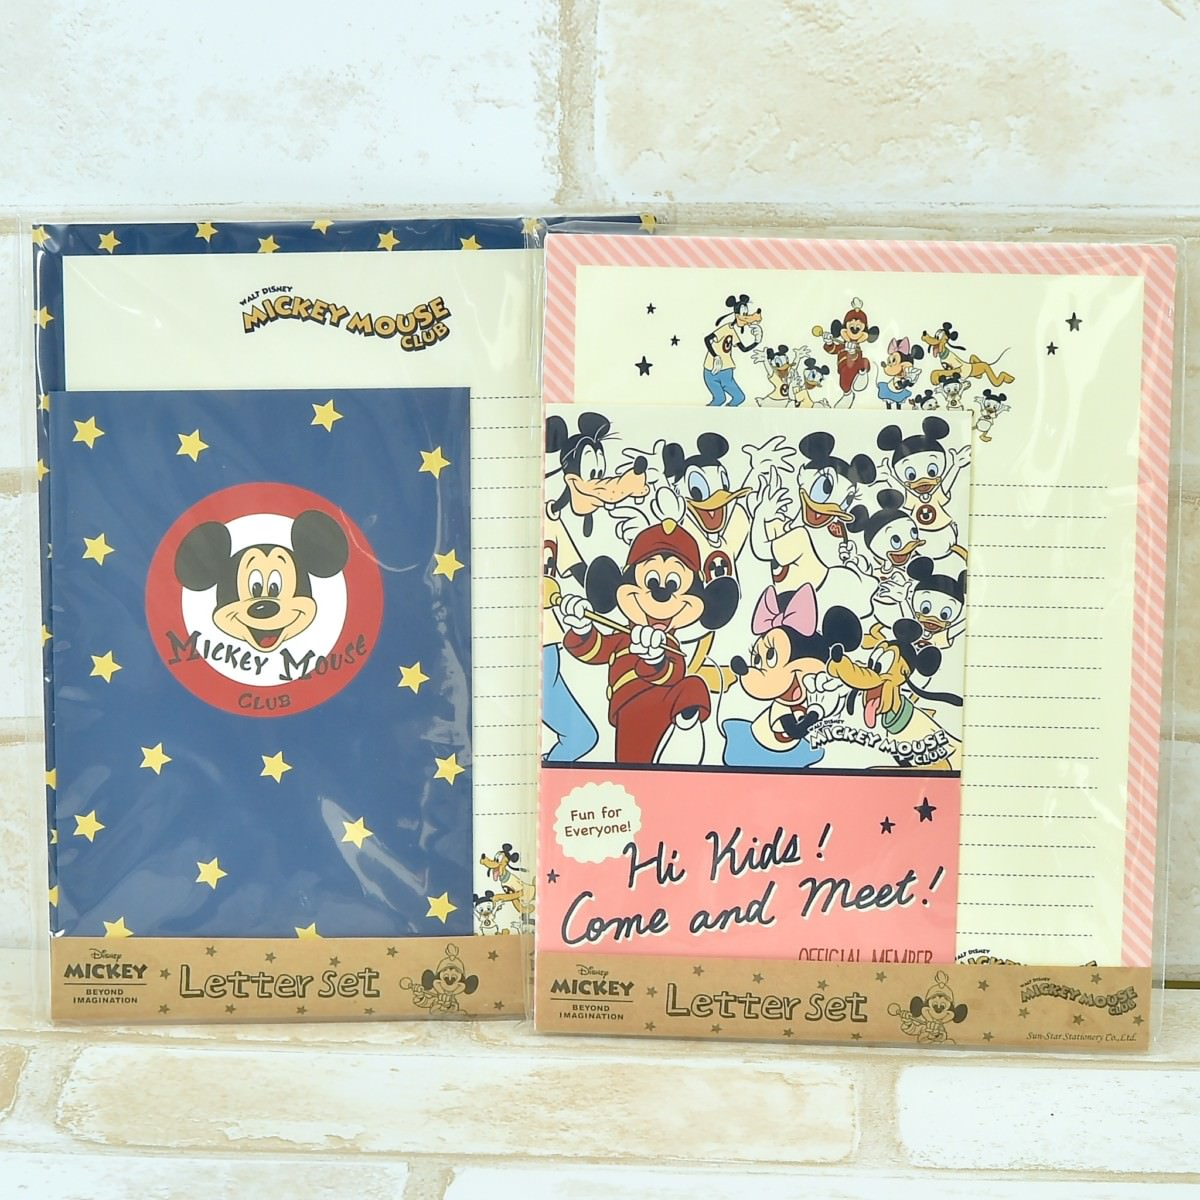 MICKEY MOUSE CLUB レターセット